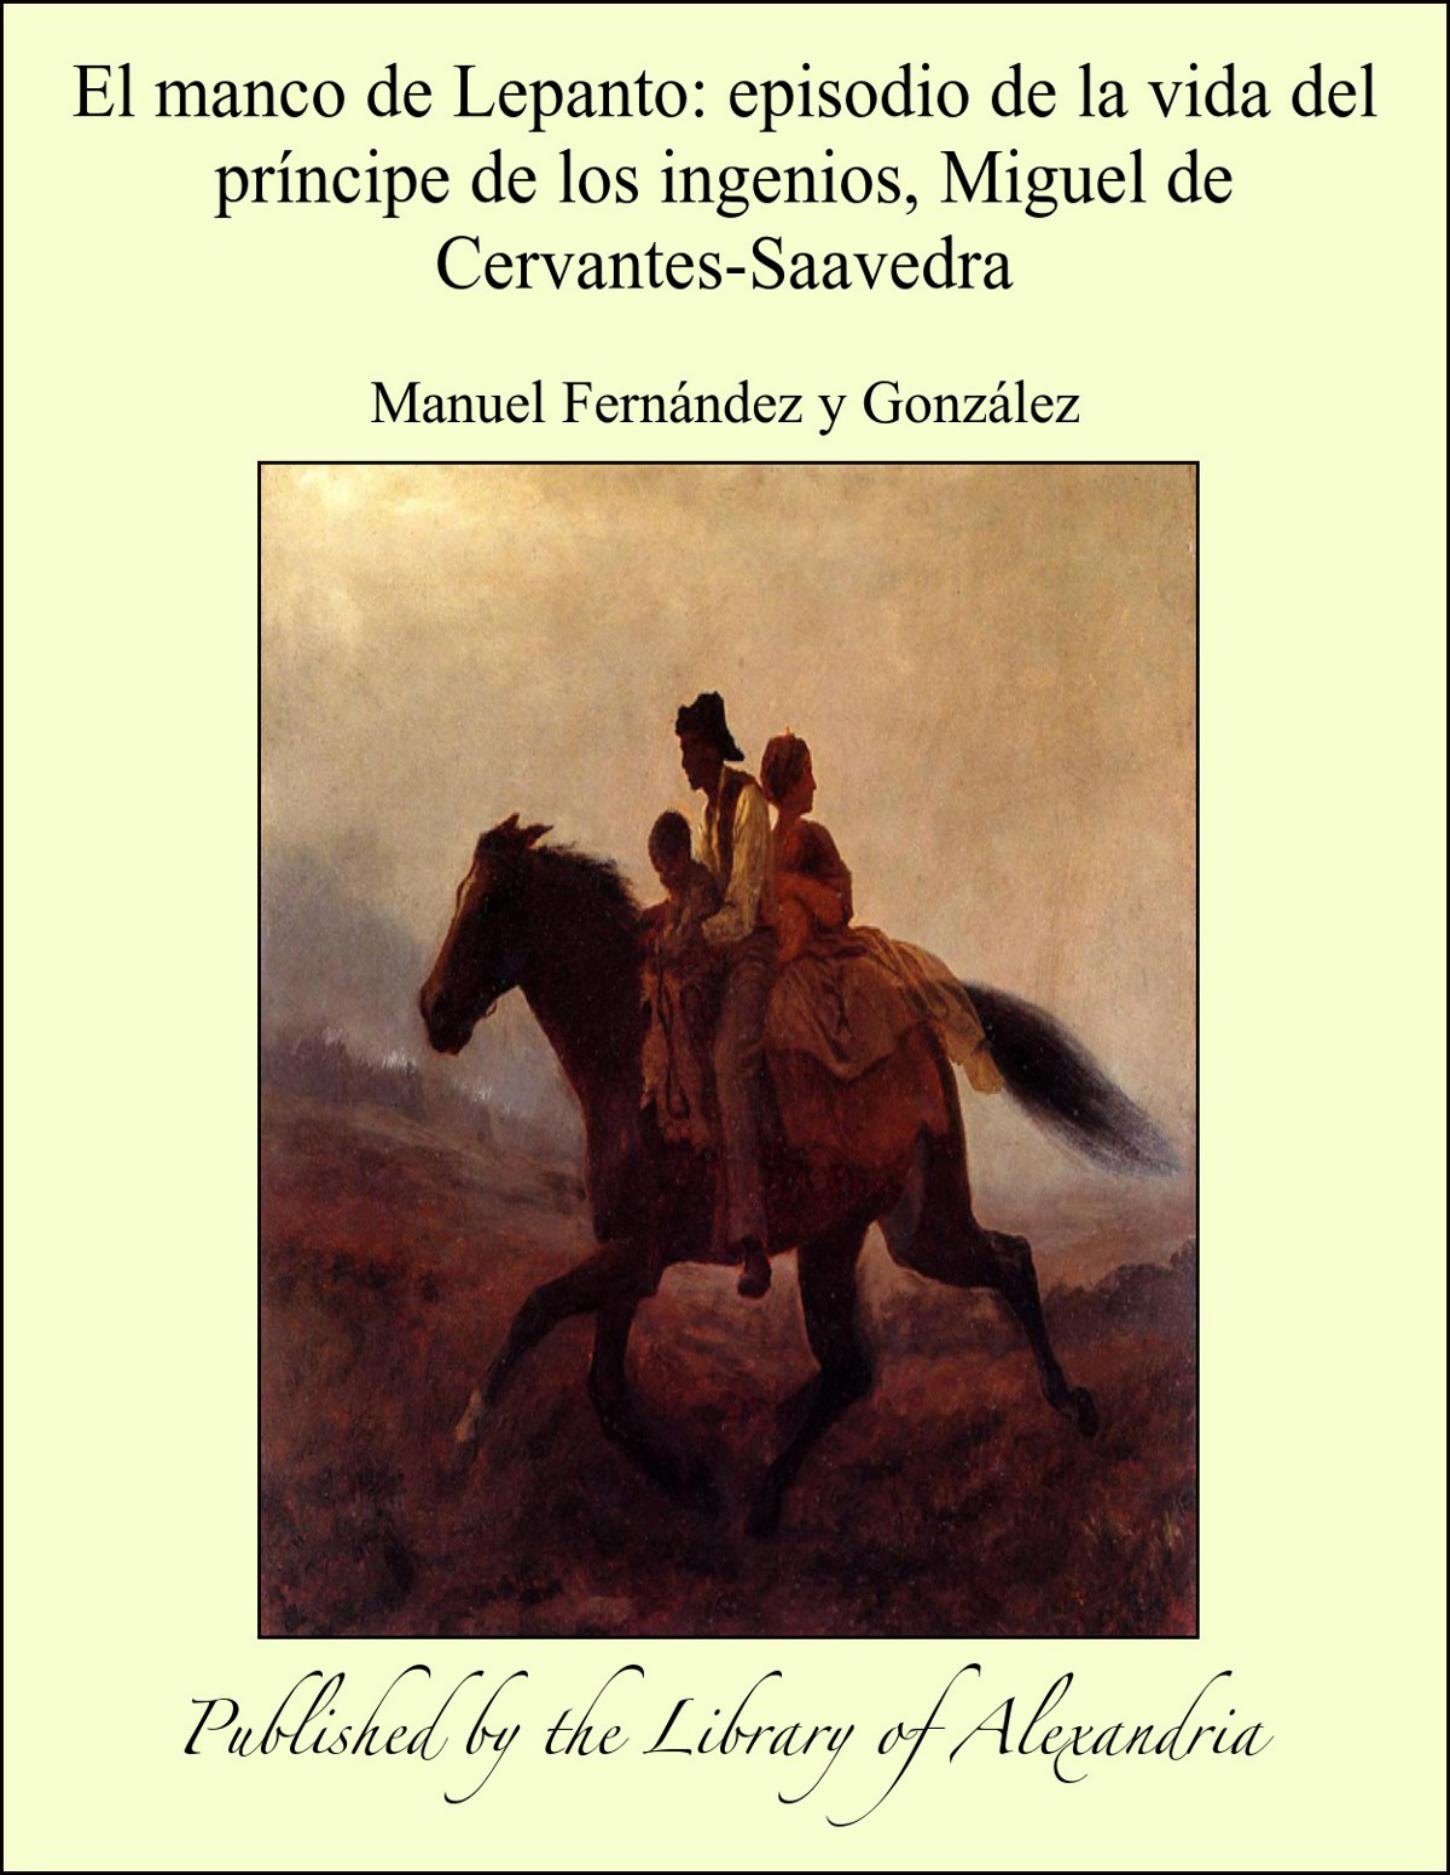 the life and literary works of miguel de cervantes saavedra The site is available in english or spanish, and the biography can also be read in french this is an excellent site if you are looking for links about the author or his work which are in spanish contains: full bio, bibliography, pictures: author: dr eduardo urbina: keywords: don miguel de cervantes y saavedra.